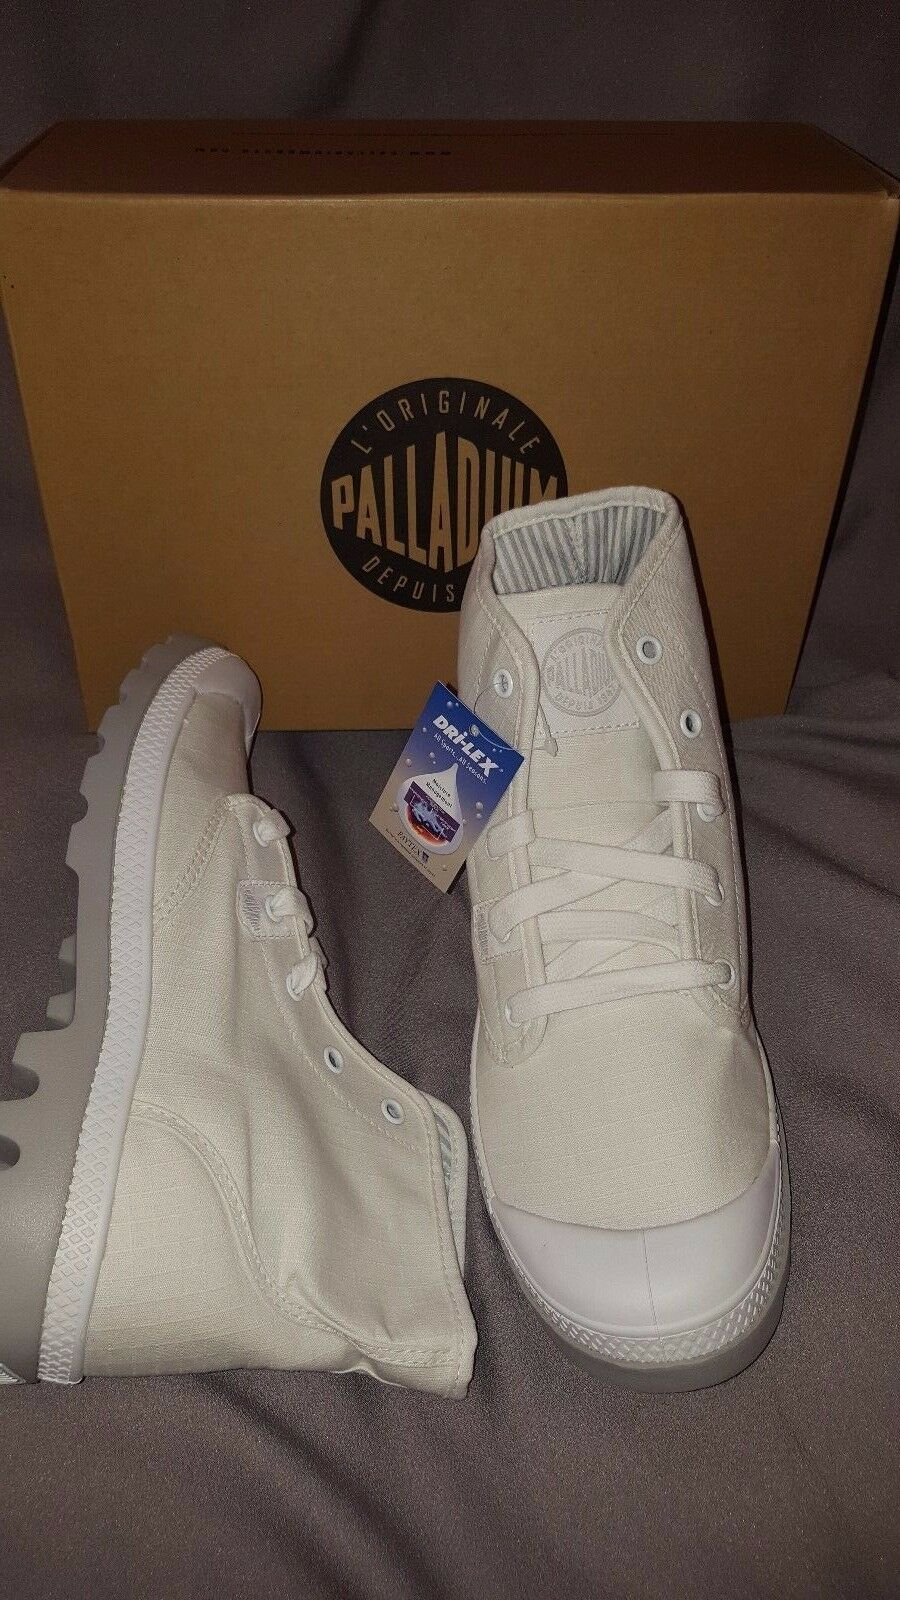 PALLADIUM PAMPA HI LITE WHITE VAPOR 92667170 WOMENS US 8.5 NEW NIB